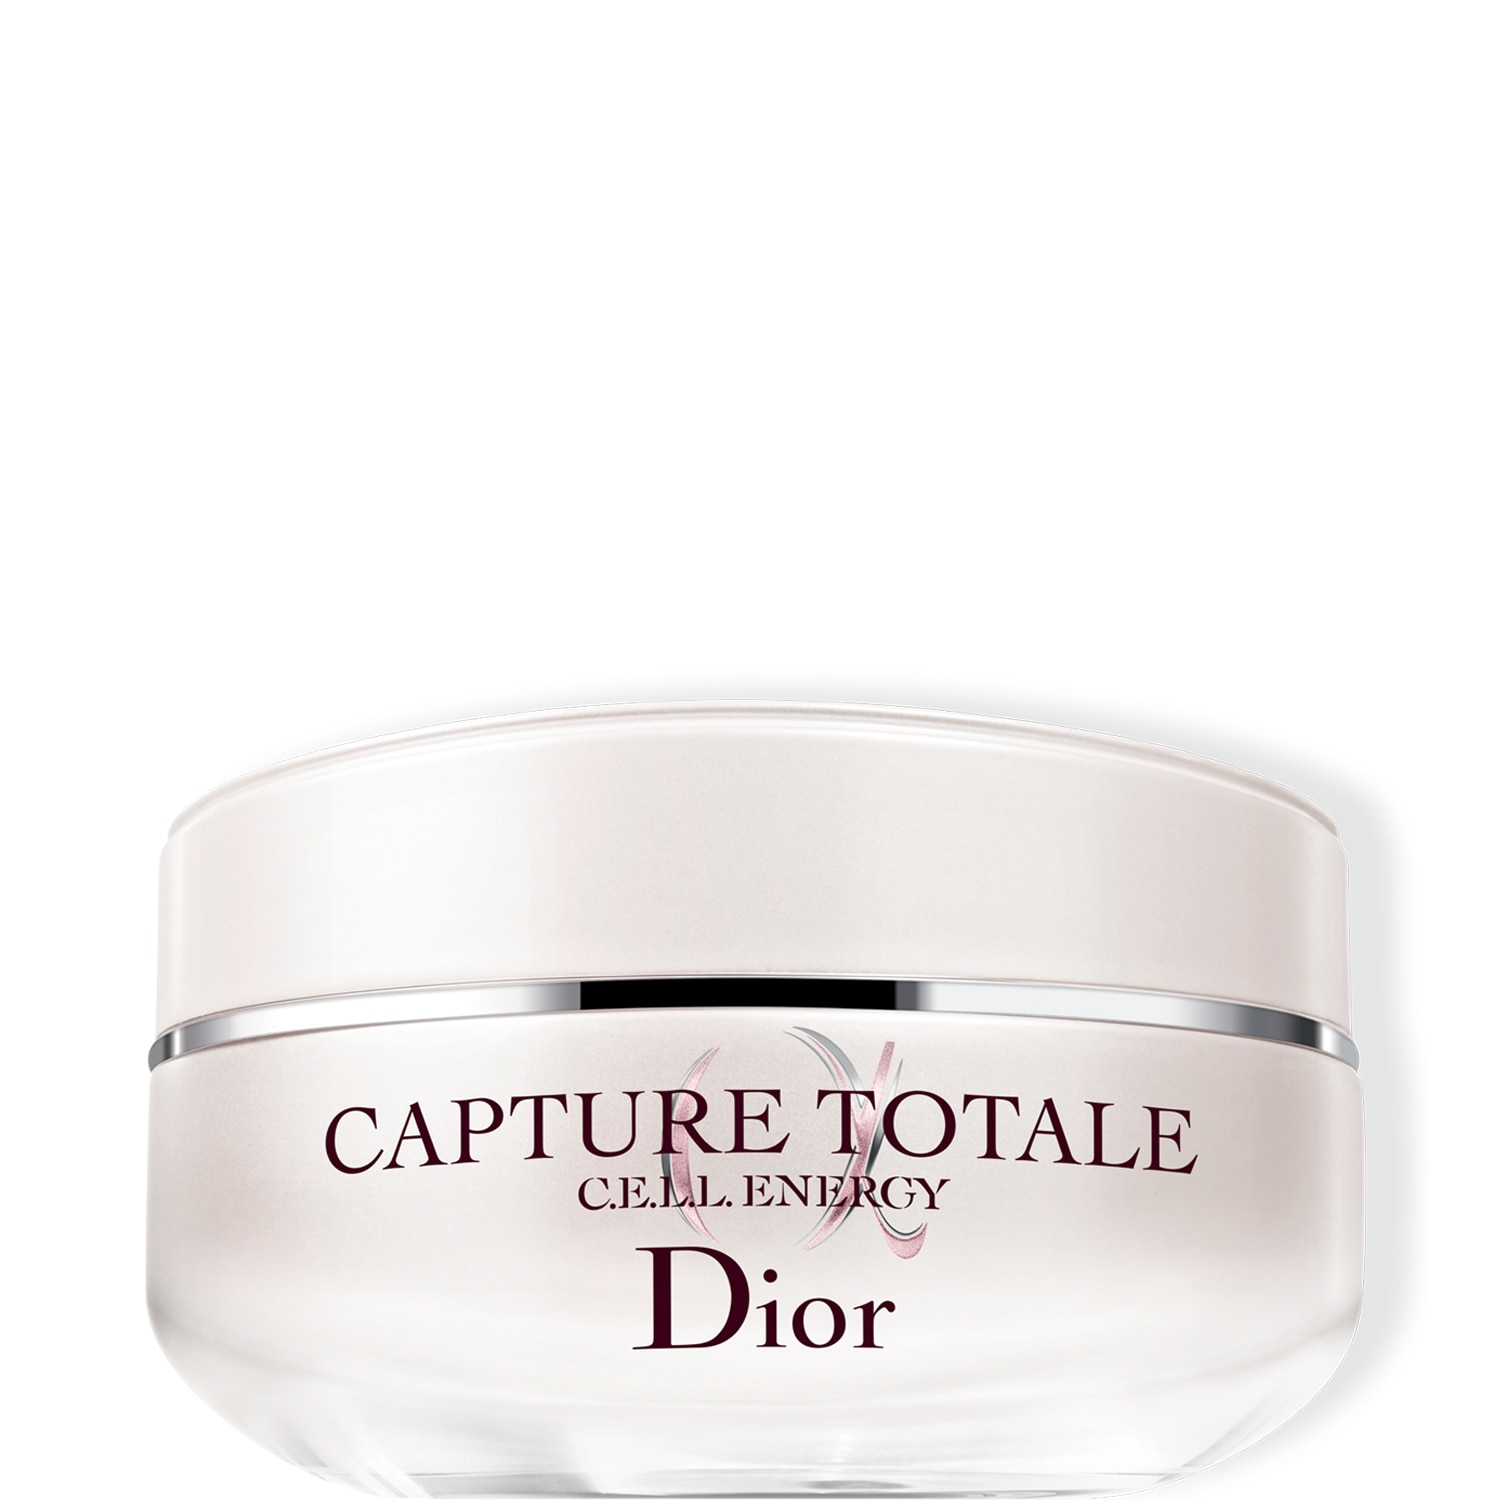 CAPTURE TOTALE FIRMING & WRINKLE-CORRECTING CRÈME 50ML